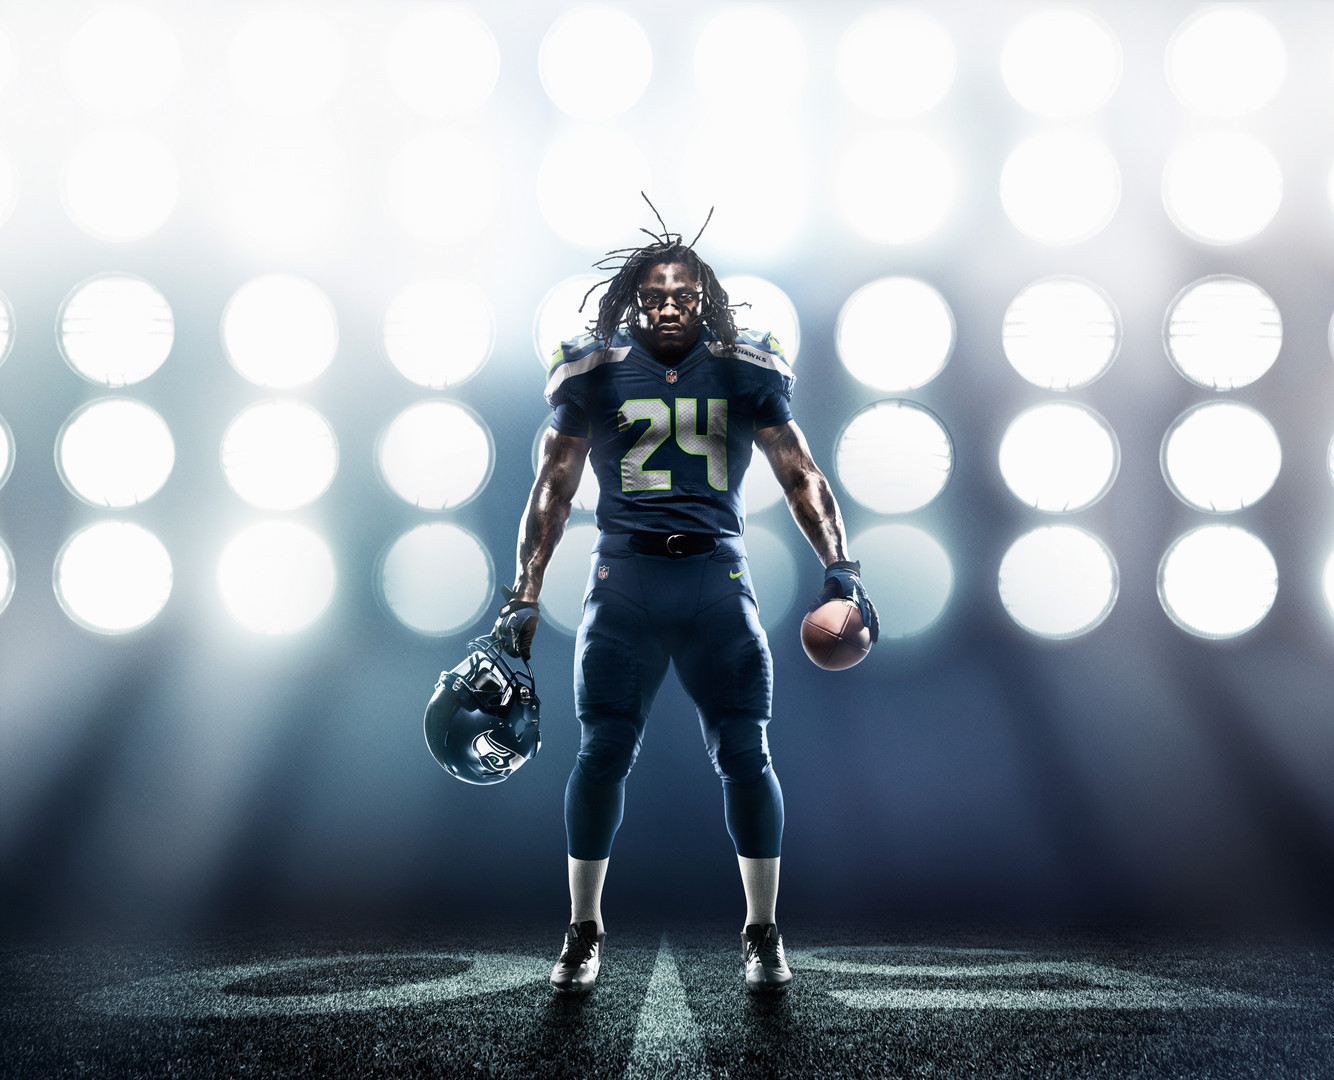 SU12_AT_LYNCH_NFL_Seahawks Uniform_001_f